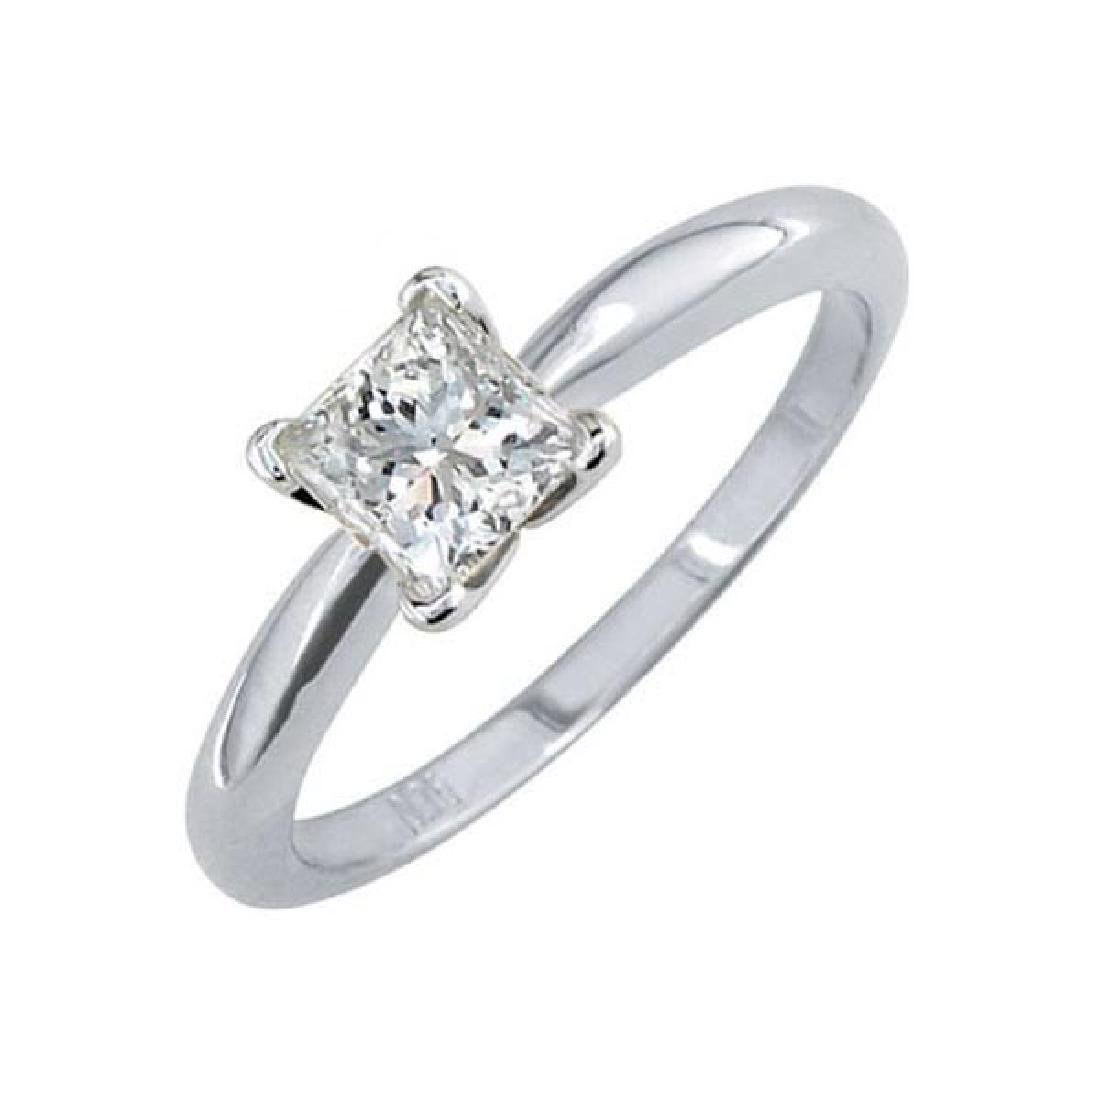 Certified 1.01 CTW Princess Diamond Solitaire 14k Ring